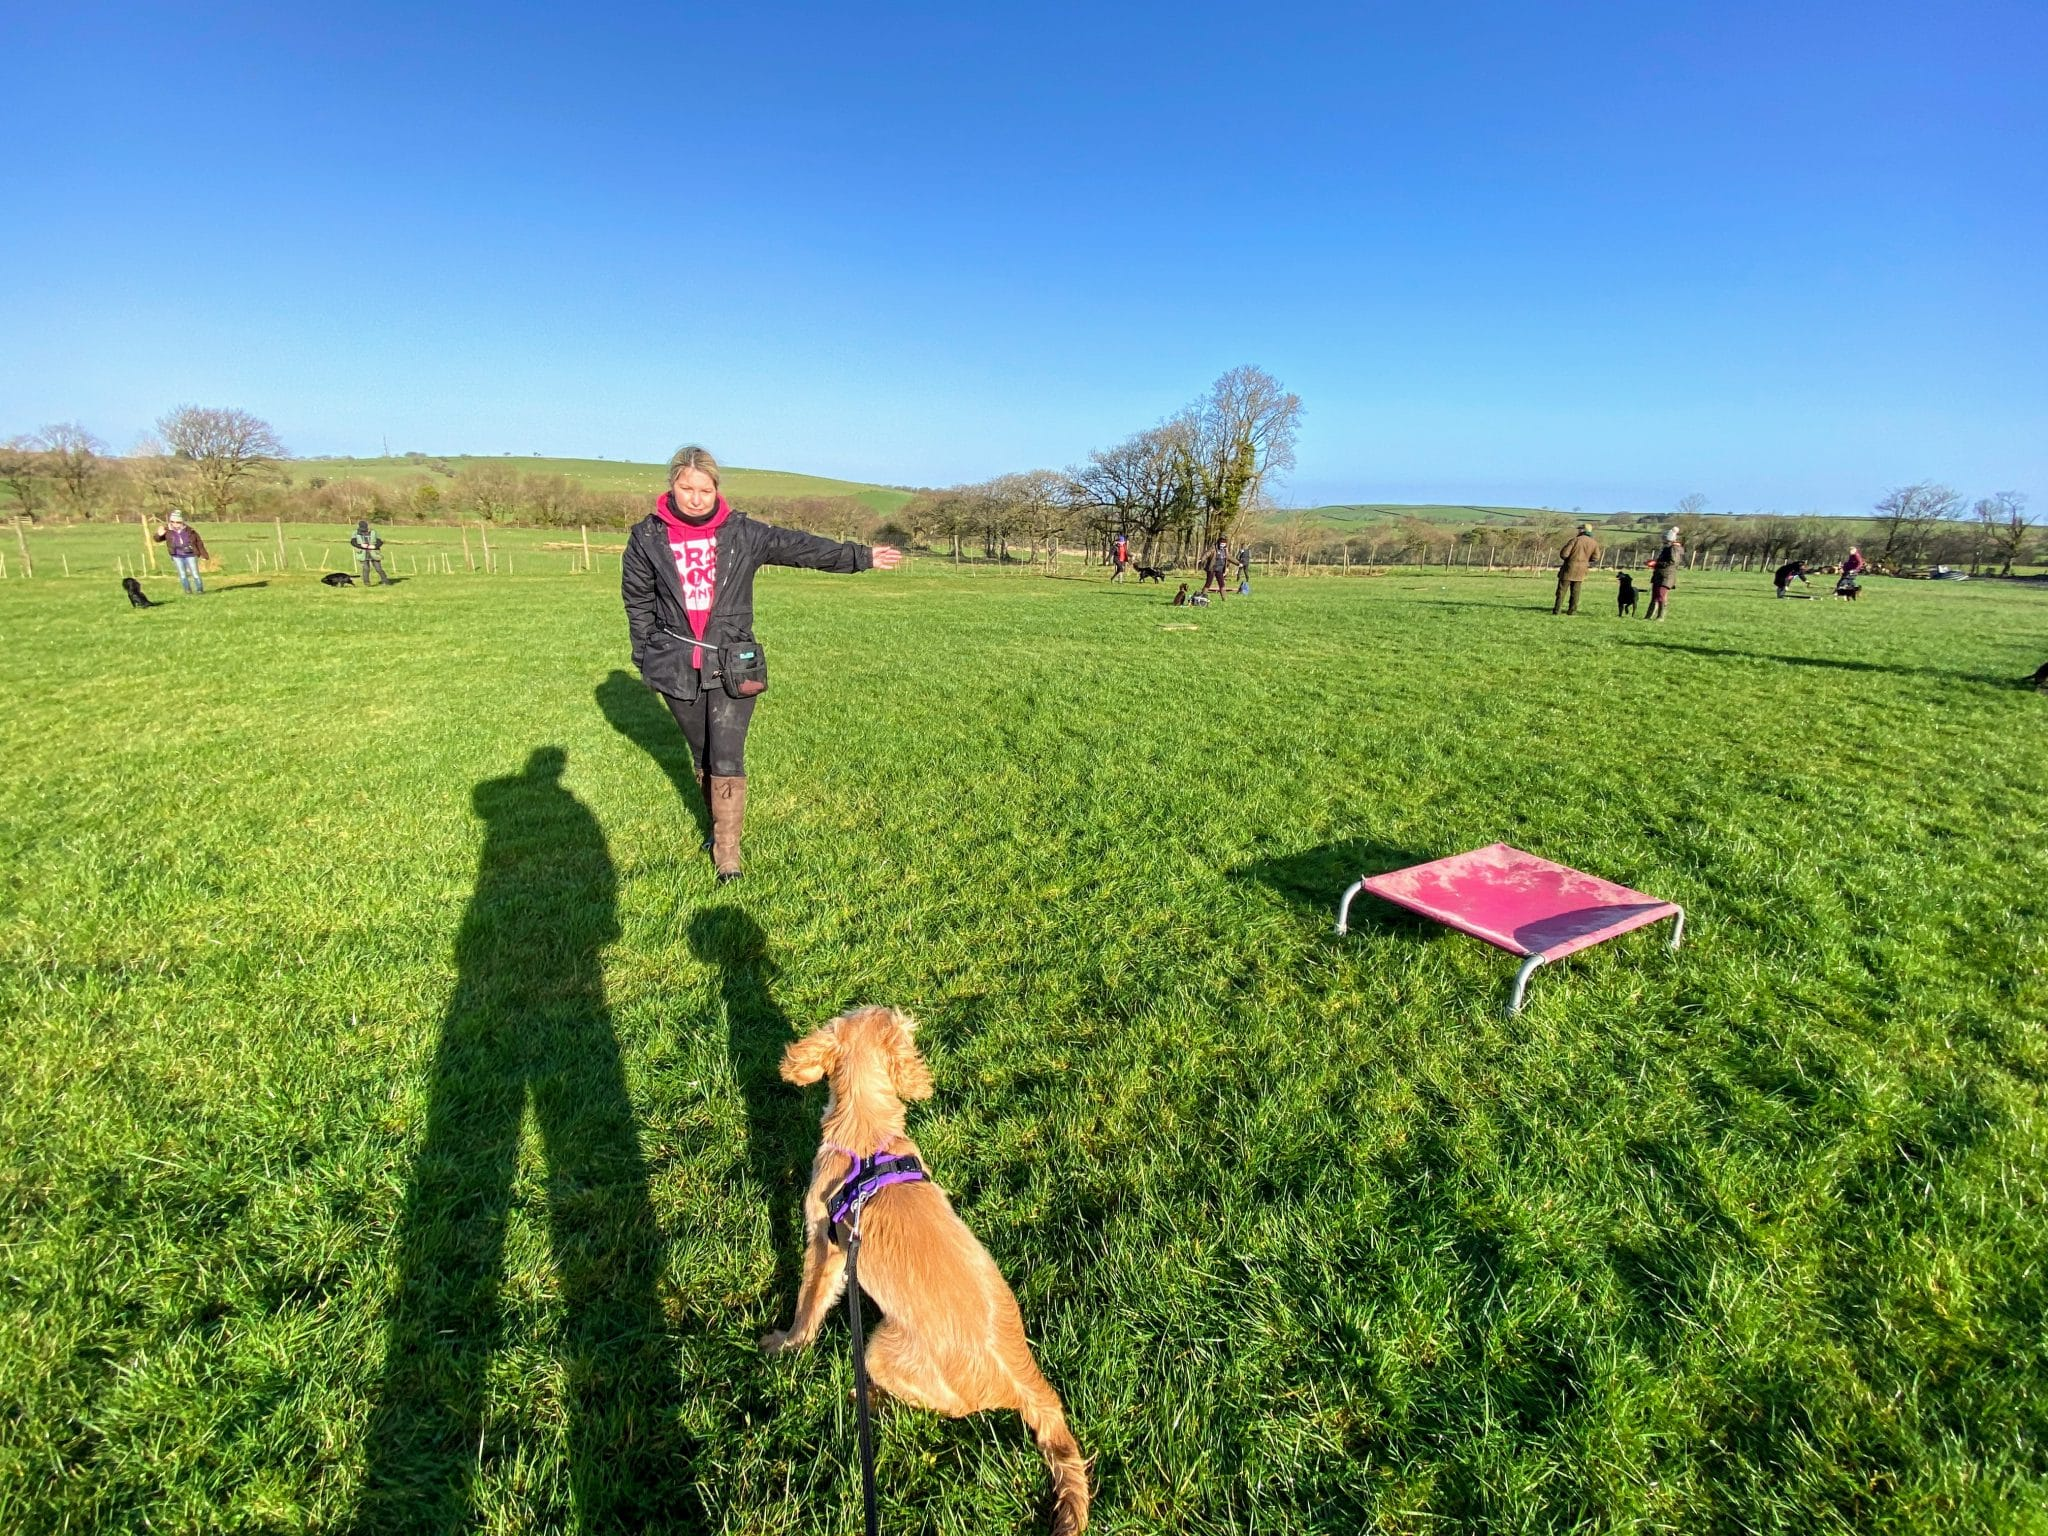 Cathy and Rocket at gundog training workshop in Devon